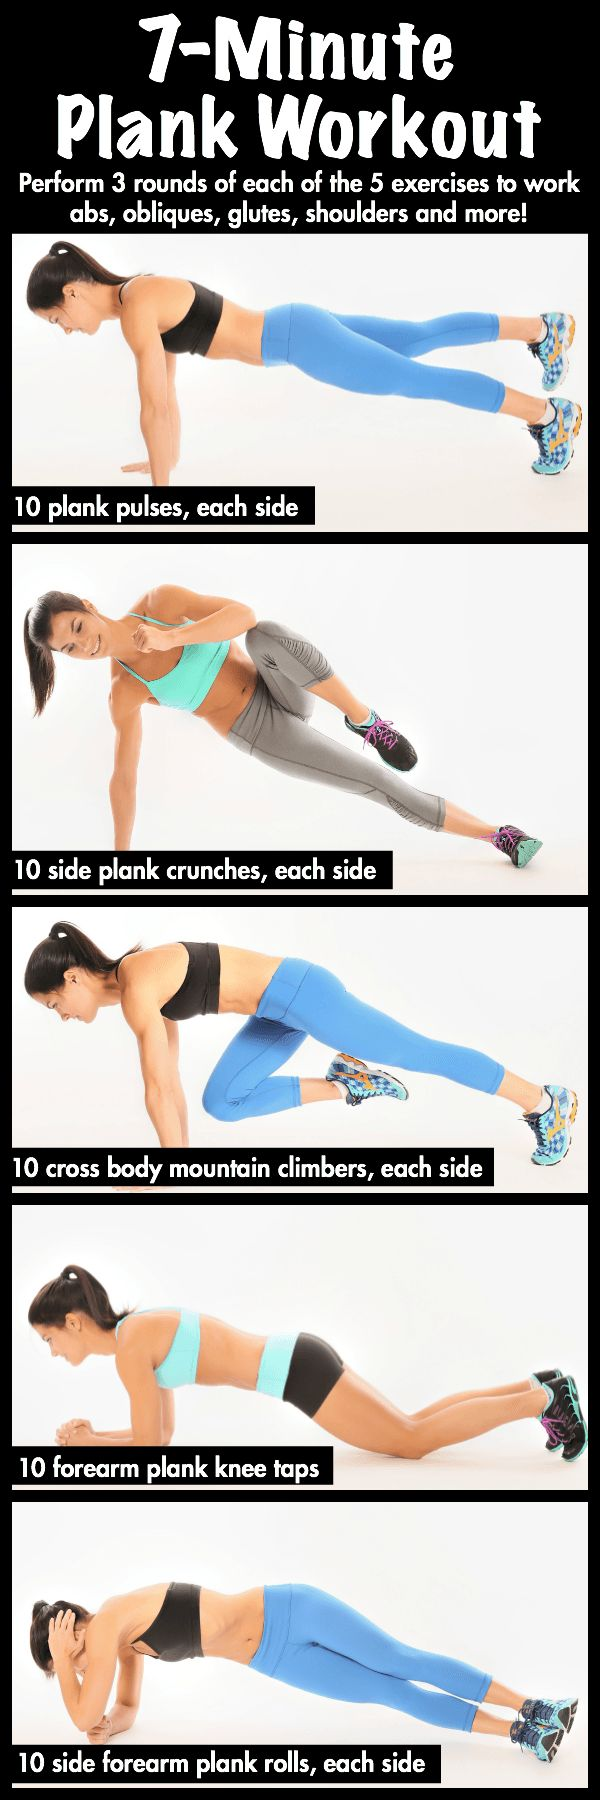 A 7-minute bodyweight plank workout that trains the abs, obliques, glutes, hamstrings and shoulders and can be done anywhere!